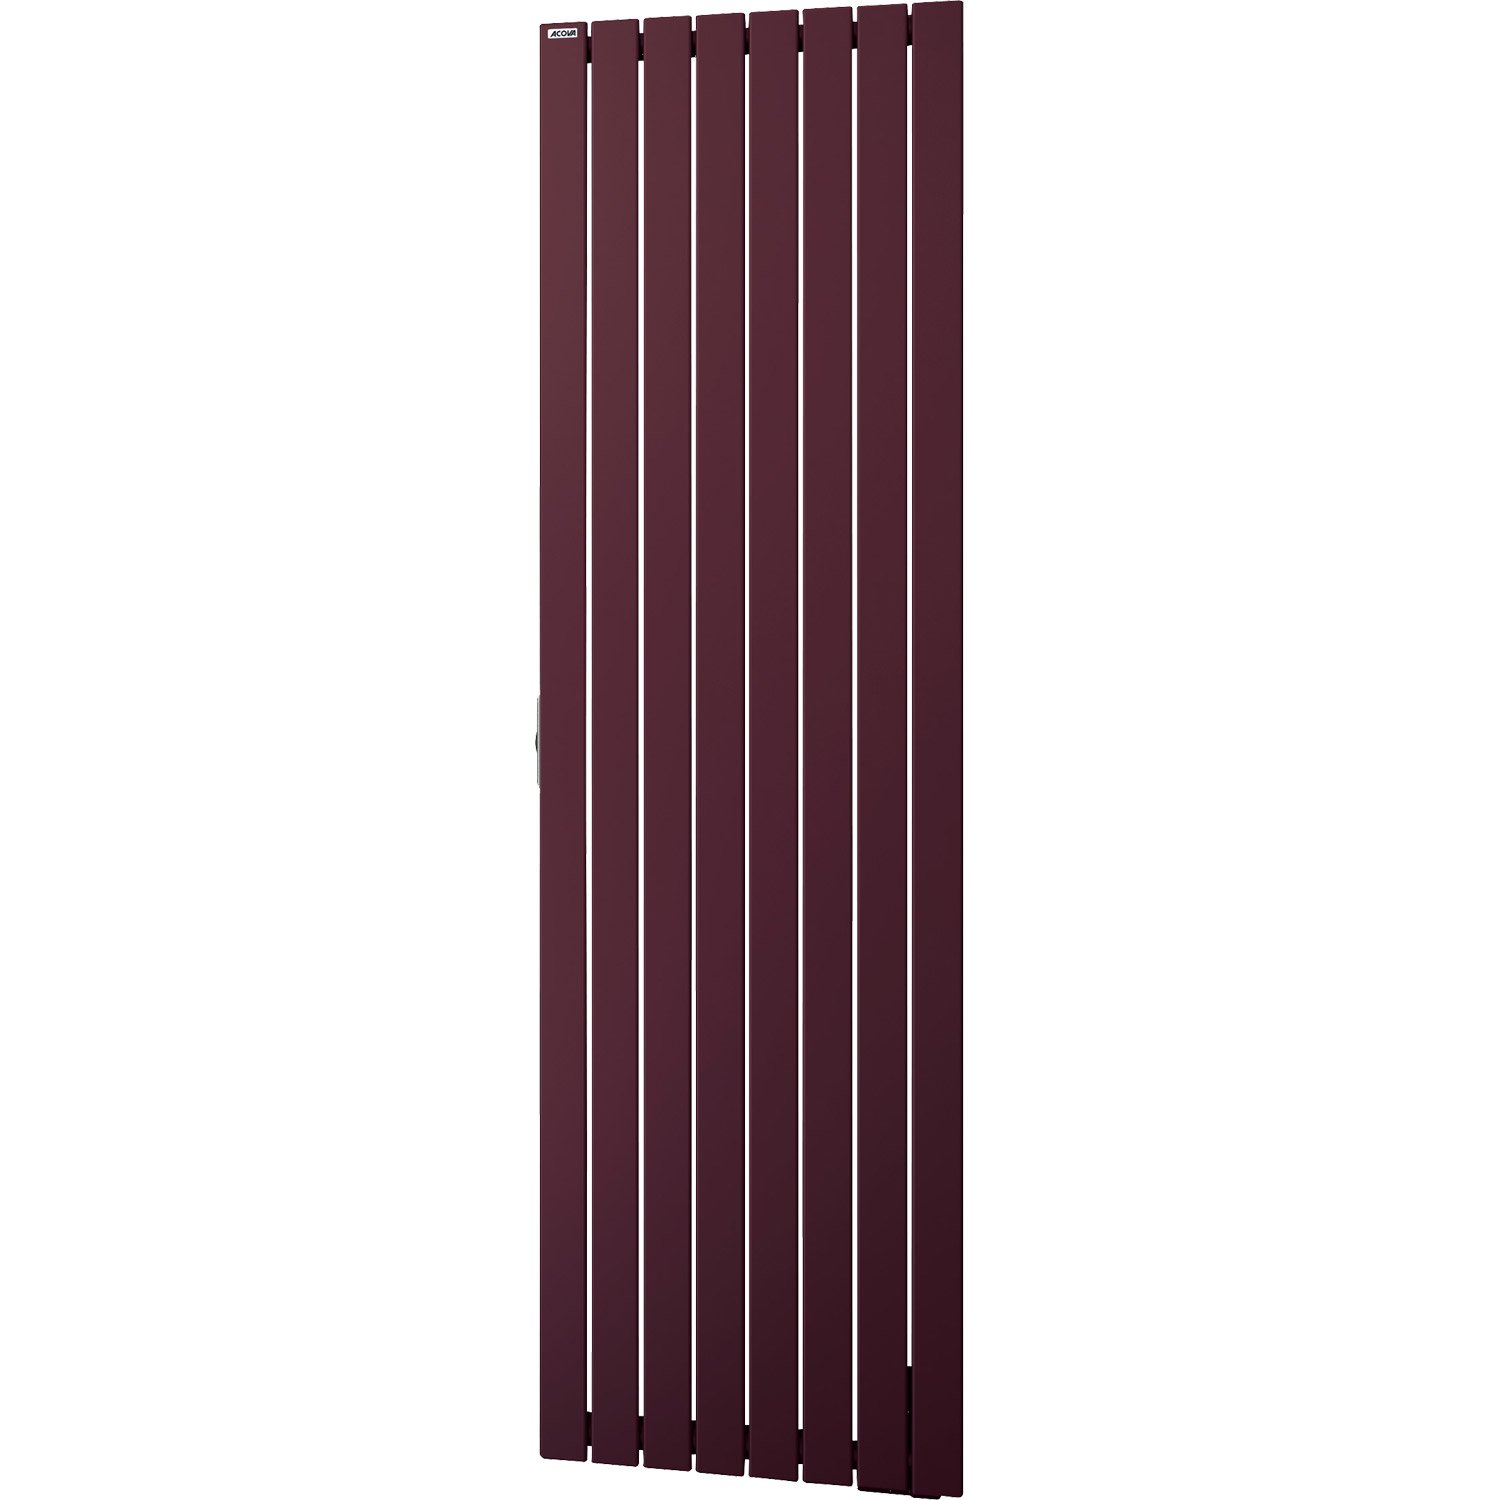 radiateur lectrique inertie fluide acova lina darck purpule vertical 1000 w leroy merlin. Black Bedroom Furniture Sets. Home Design Ideas